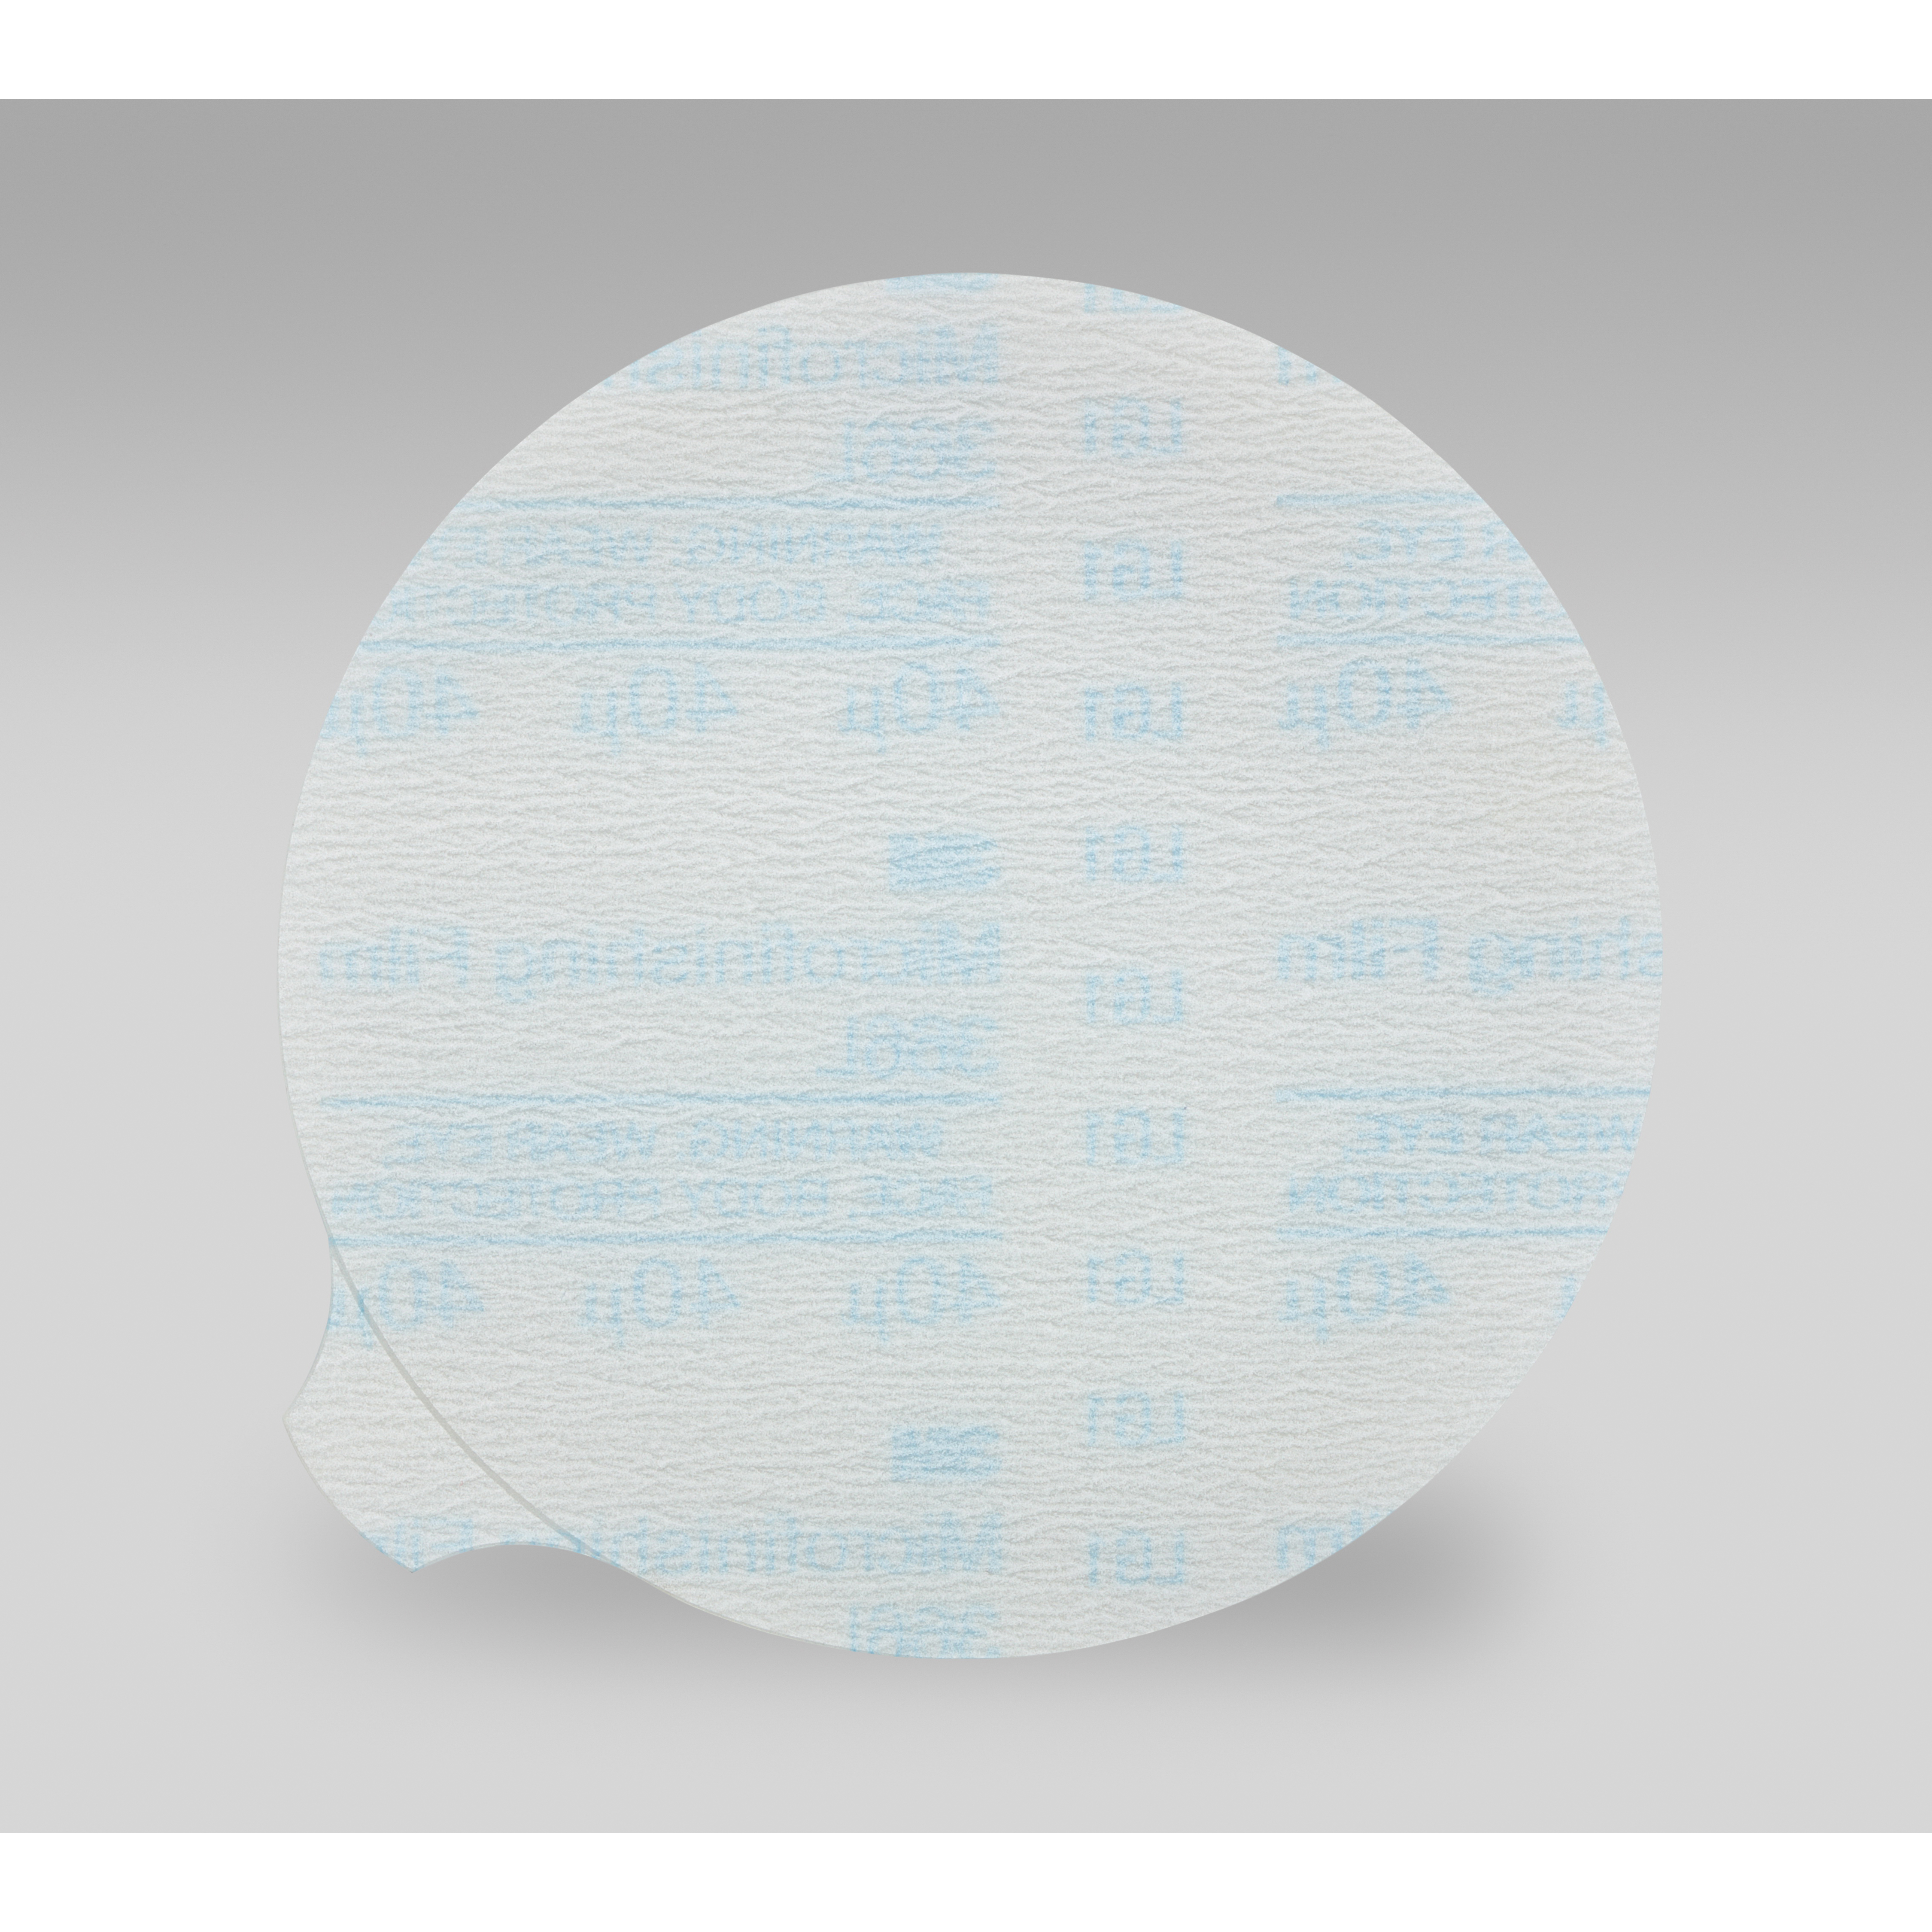 3M™ 051144-82638 268L Type D Closed Coated Microfinishing PSA Orbital Sanding Disc, 3 in Dia Disc, 40 micron Grit, Extra Fine Grade, Aluminum Oxide Abrasive, Polyester Film Backing